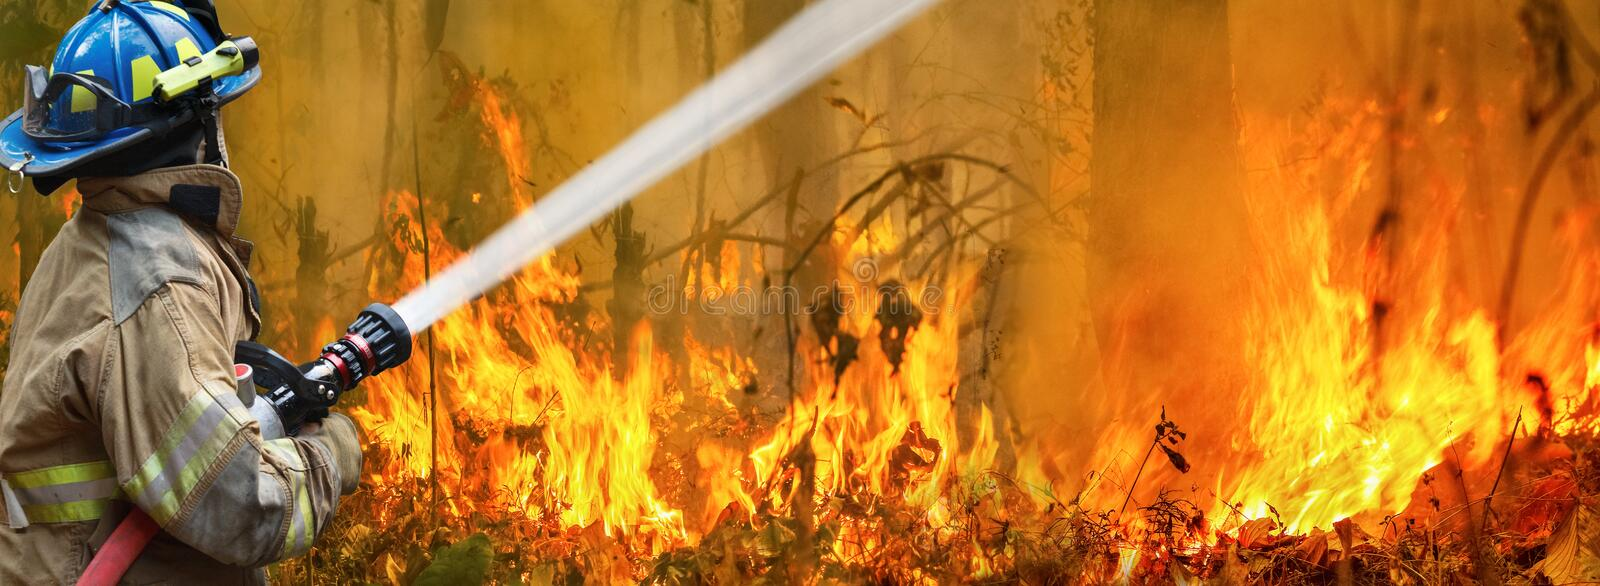 Australia bushfires, fire is fueled by wind and heat. Australia bushfires, The fire is fueled by wind and heat stock photos